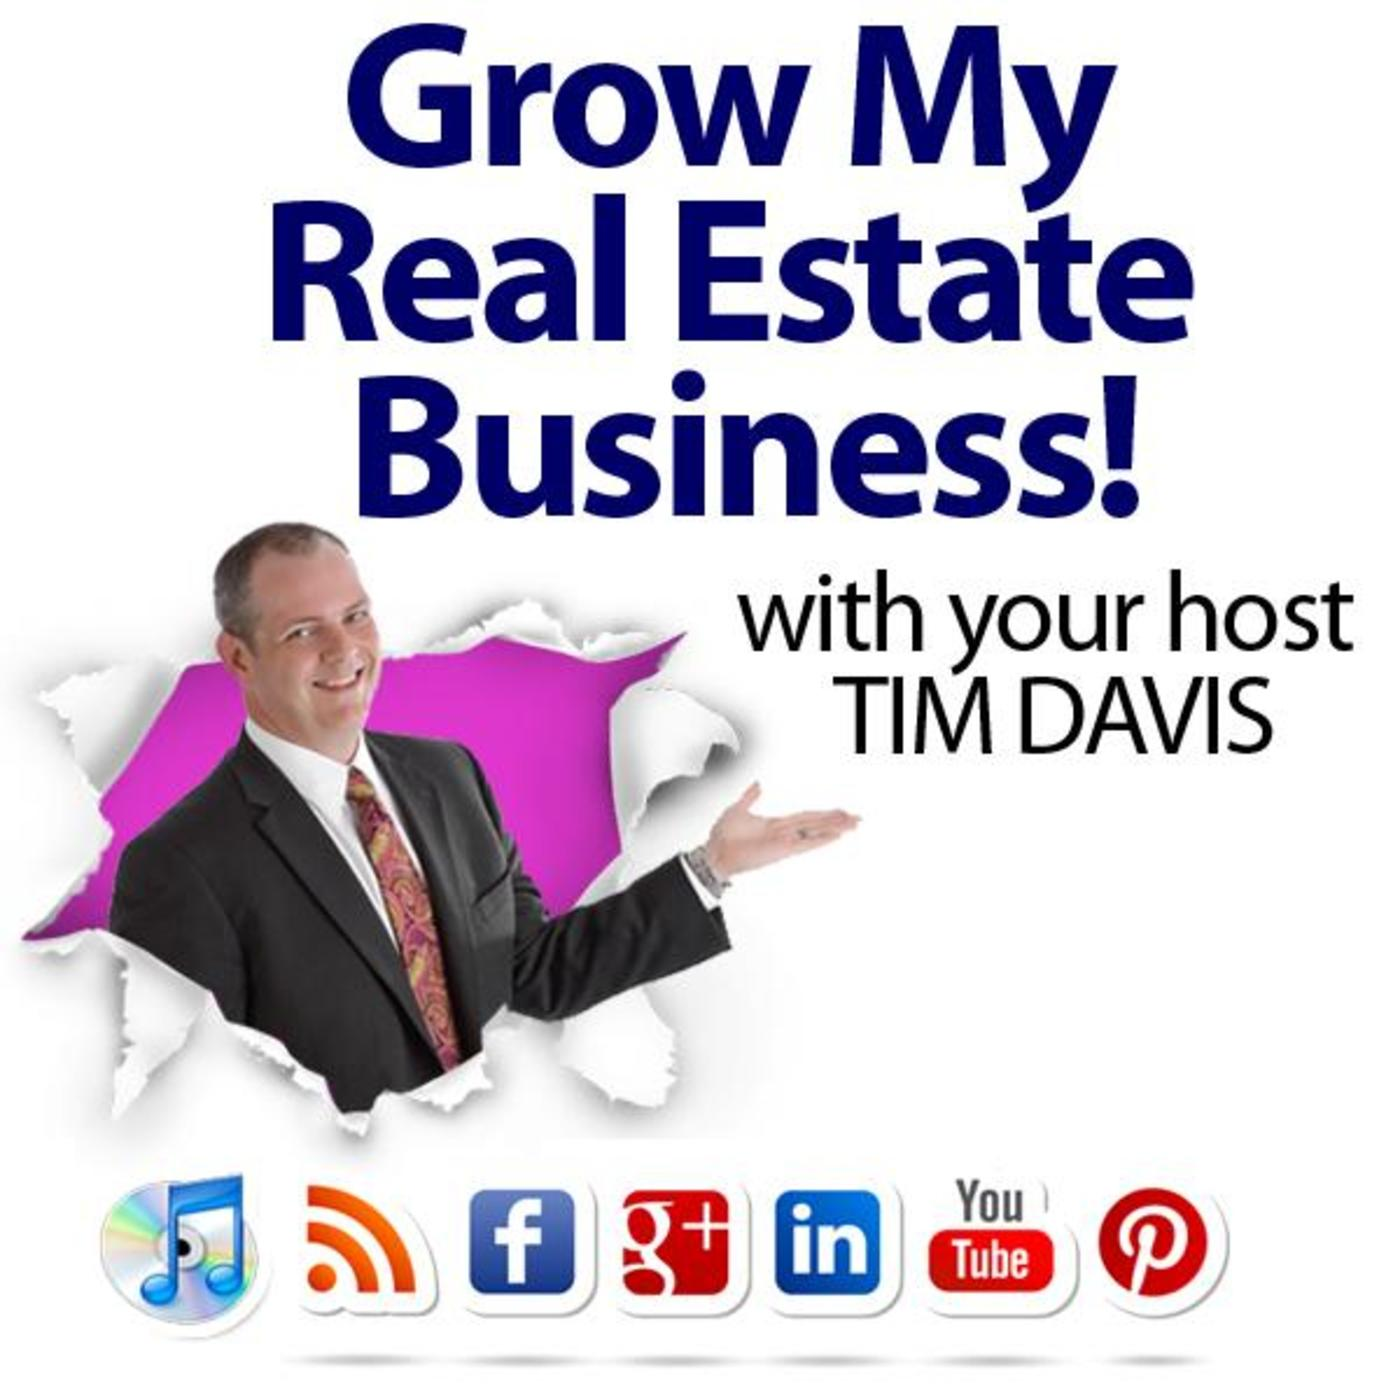 Grow My Real Estate Business